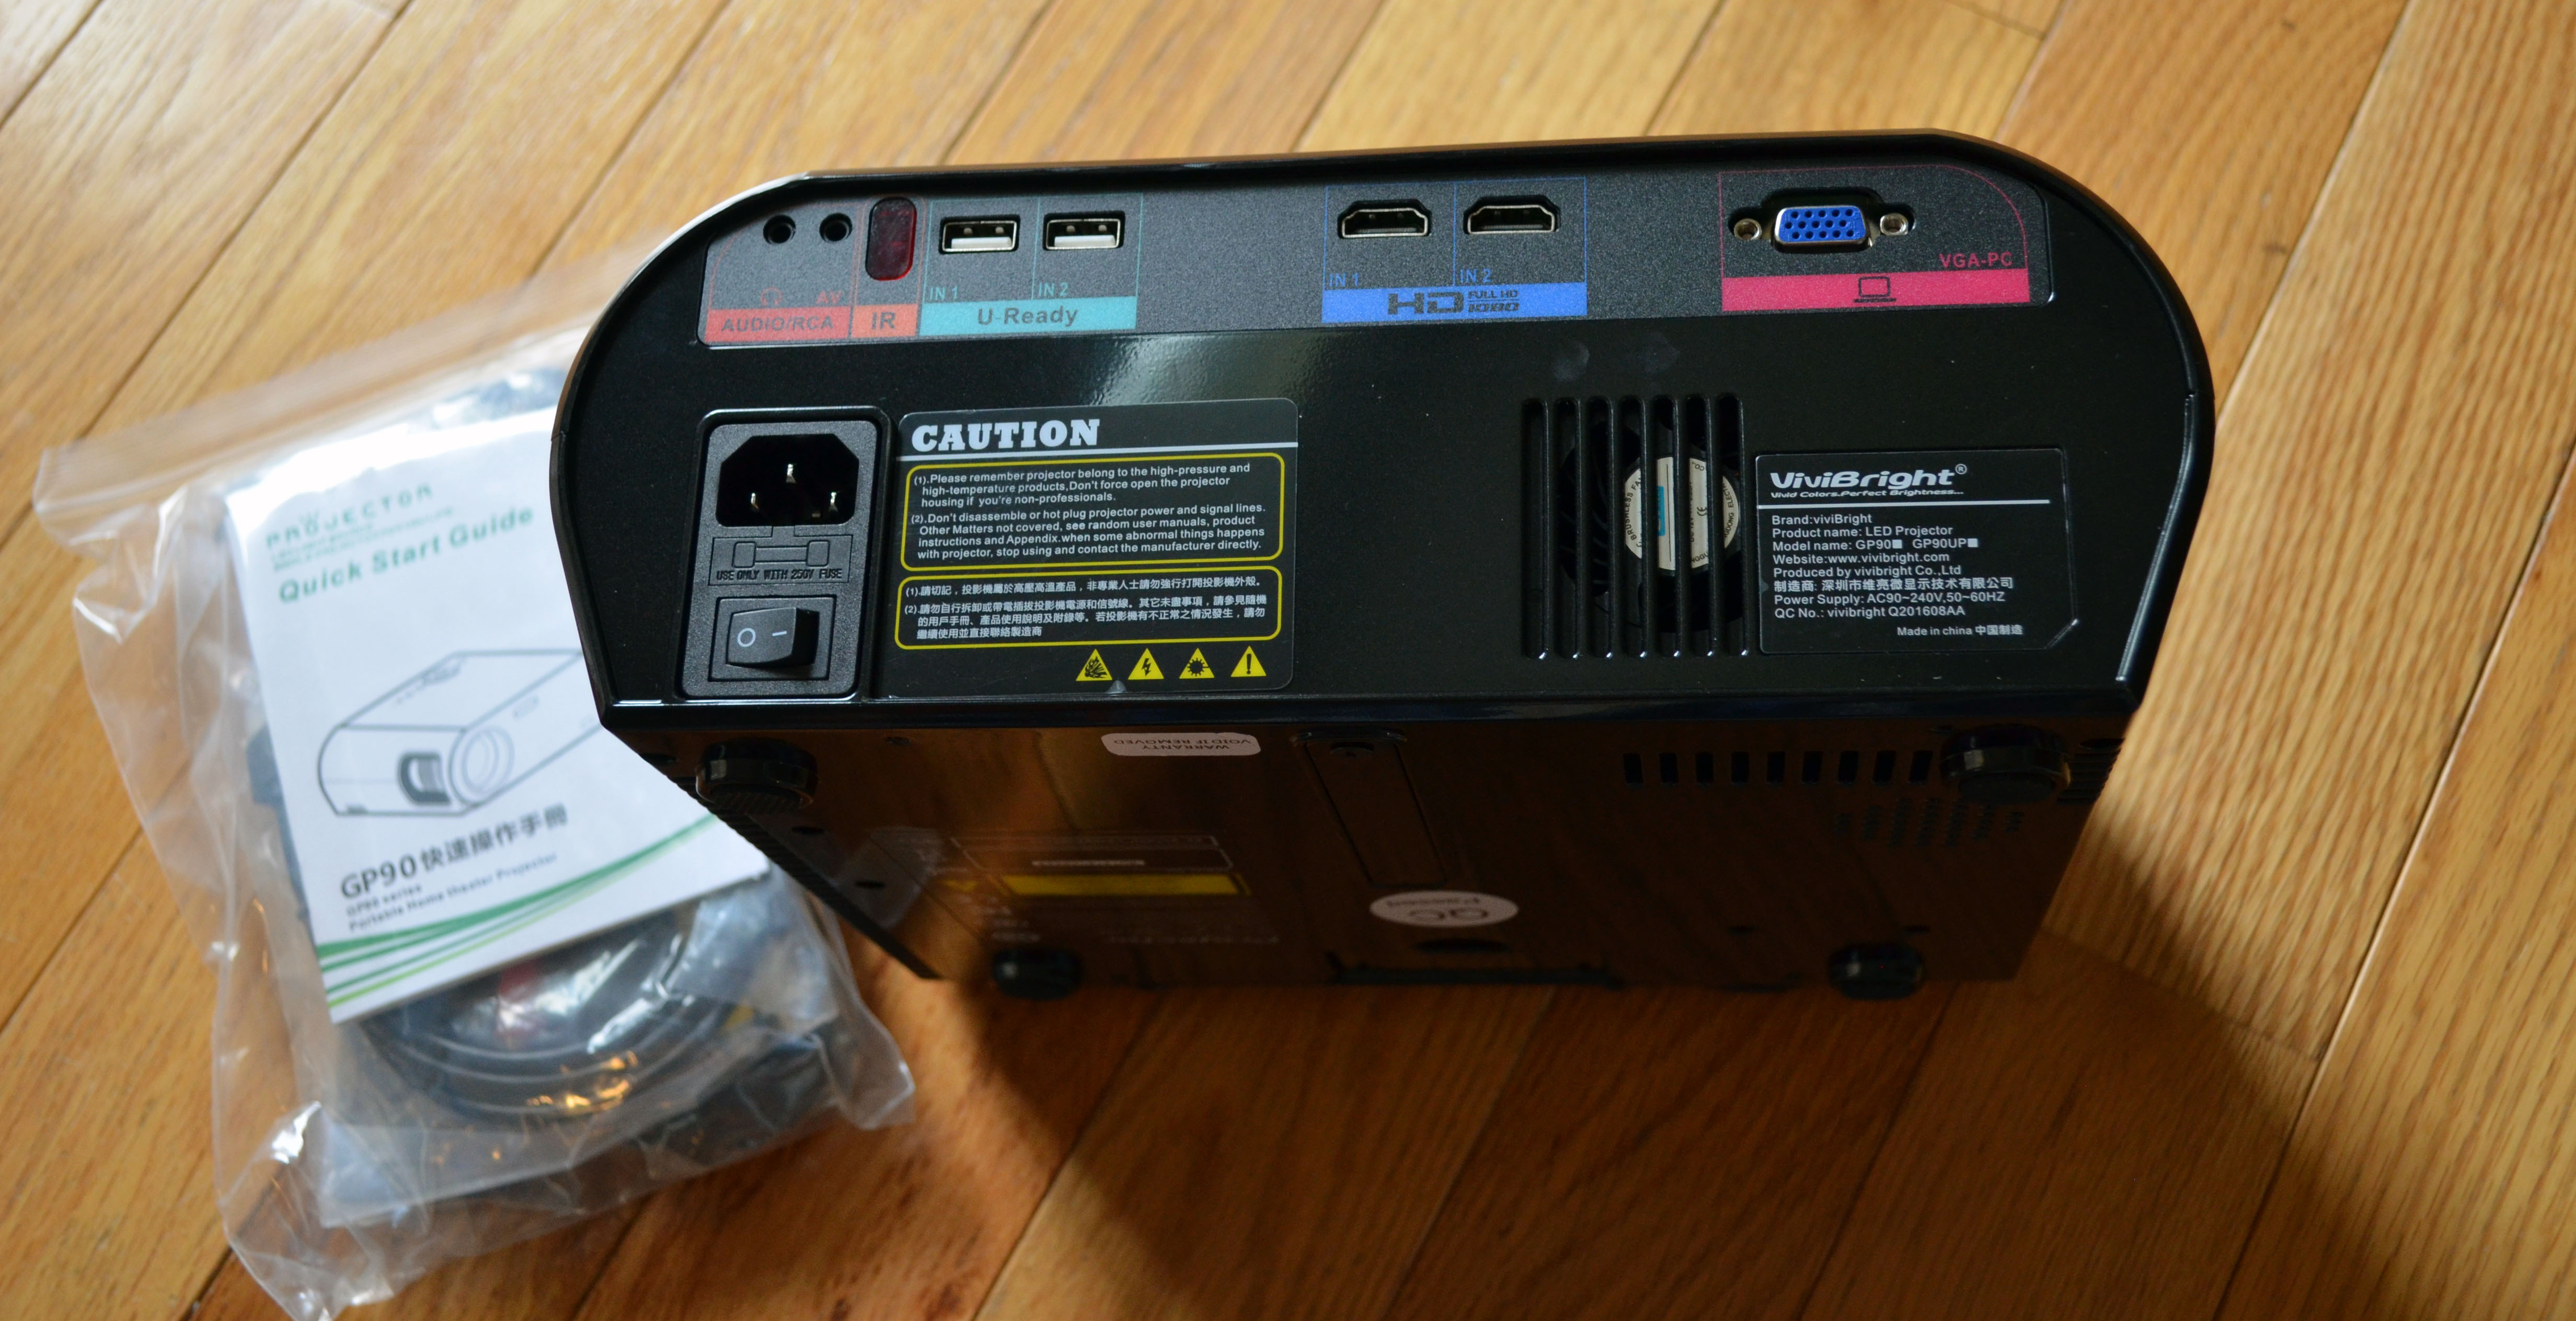 The rear of the projector.